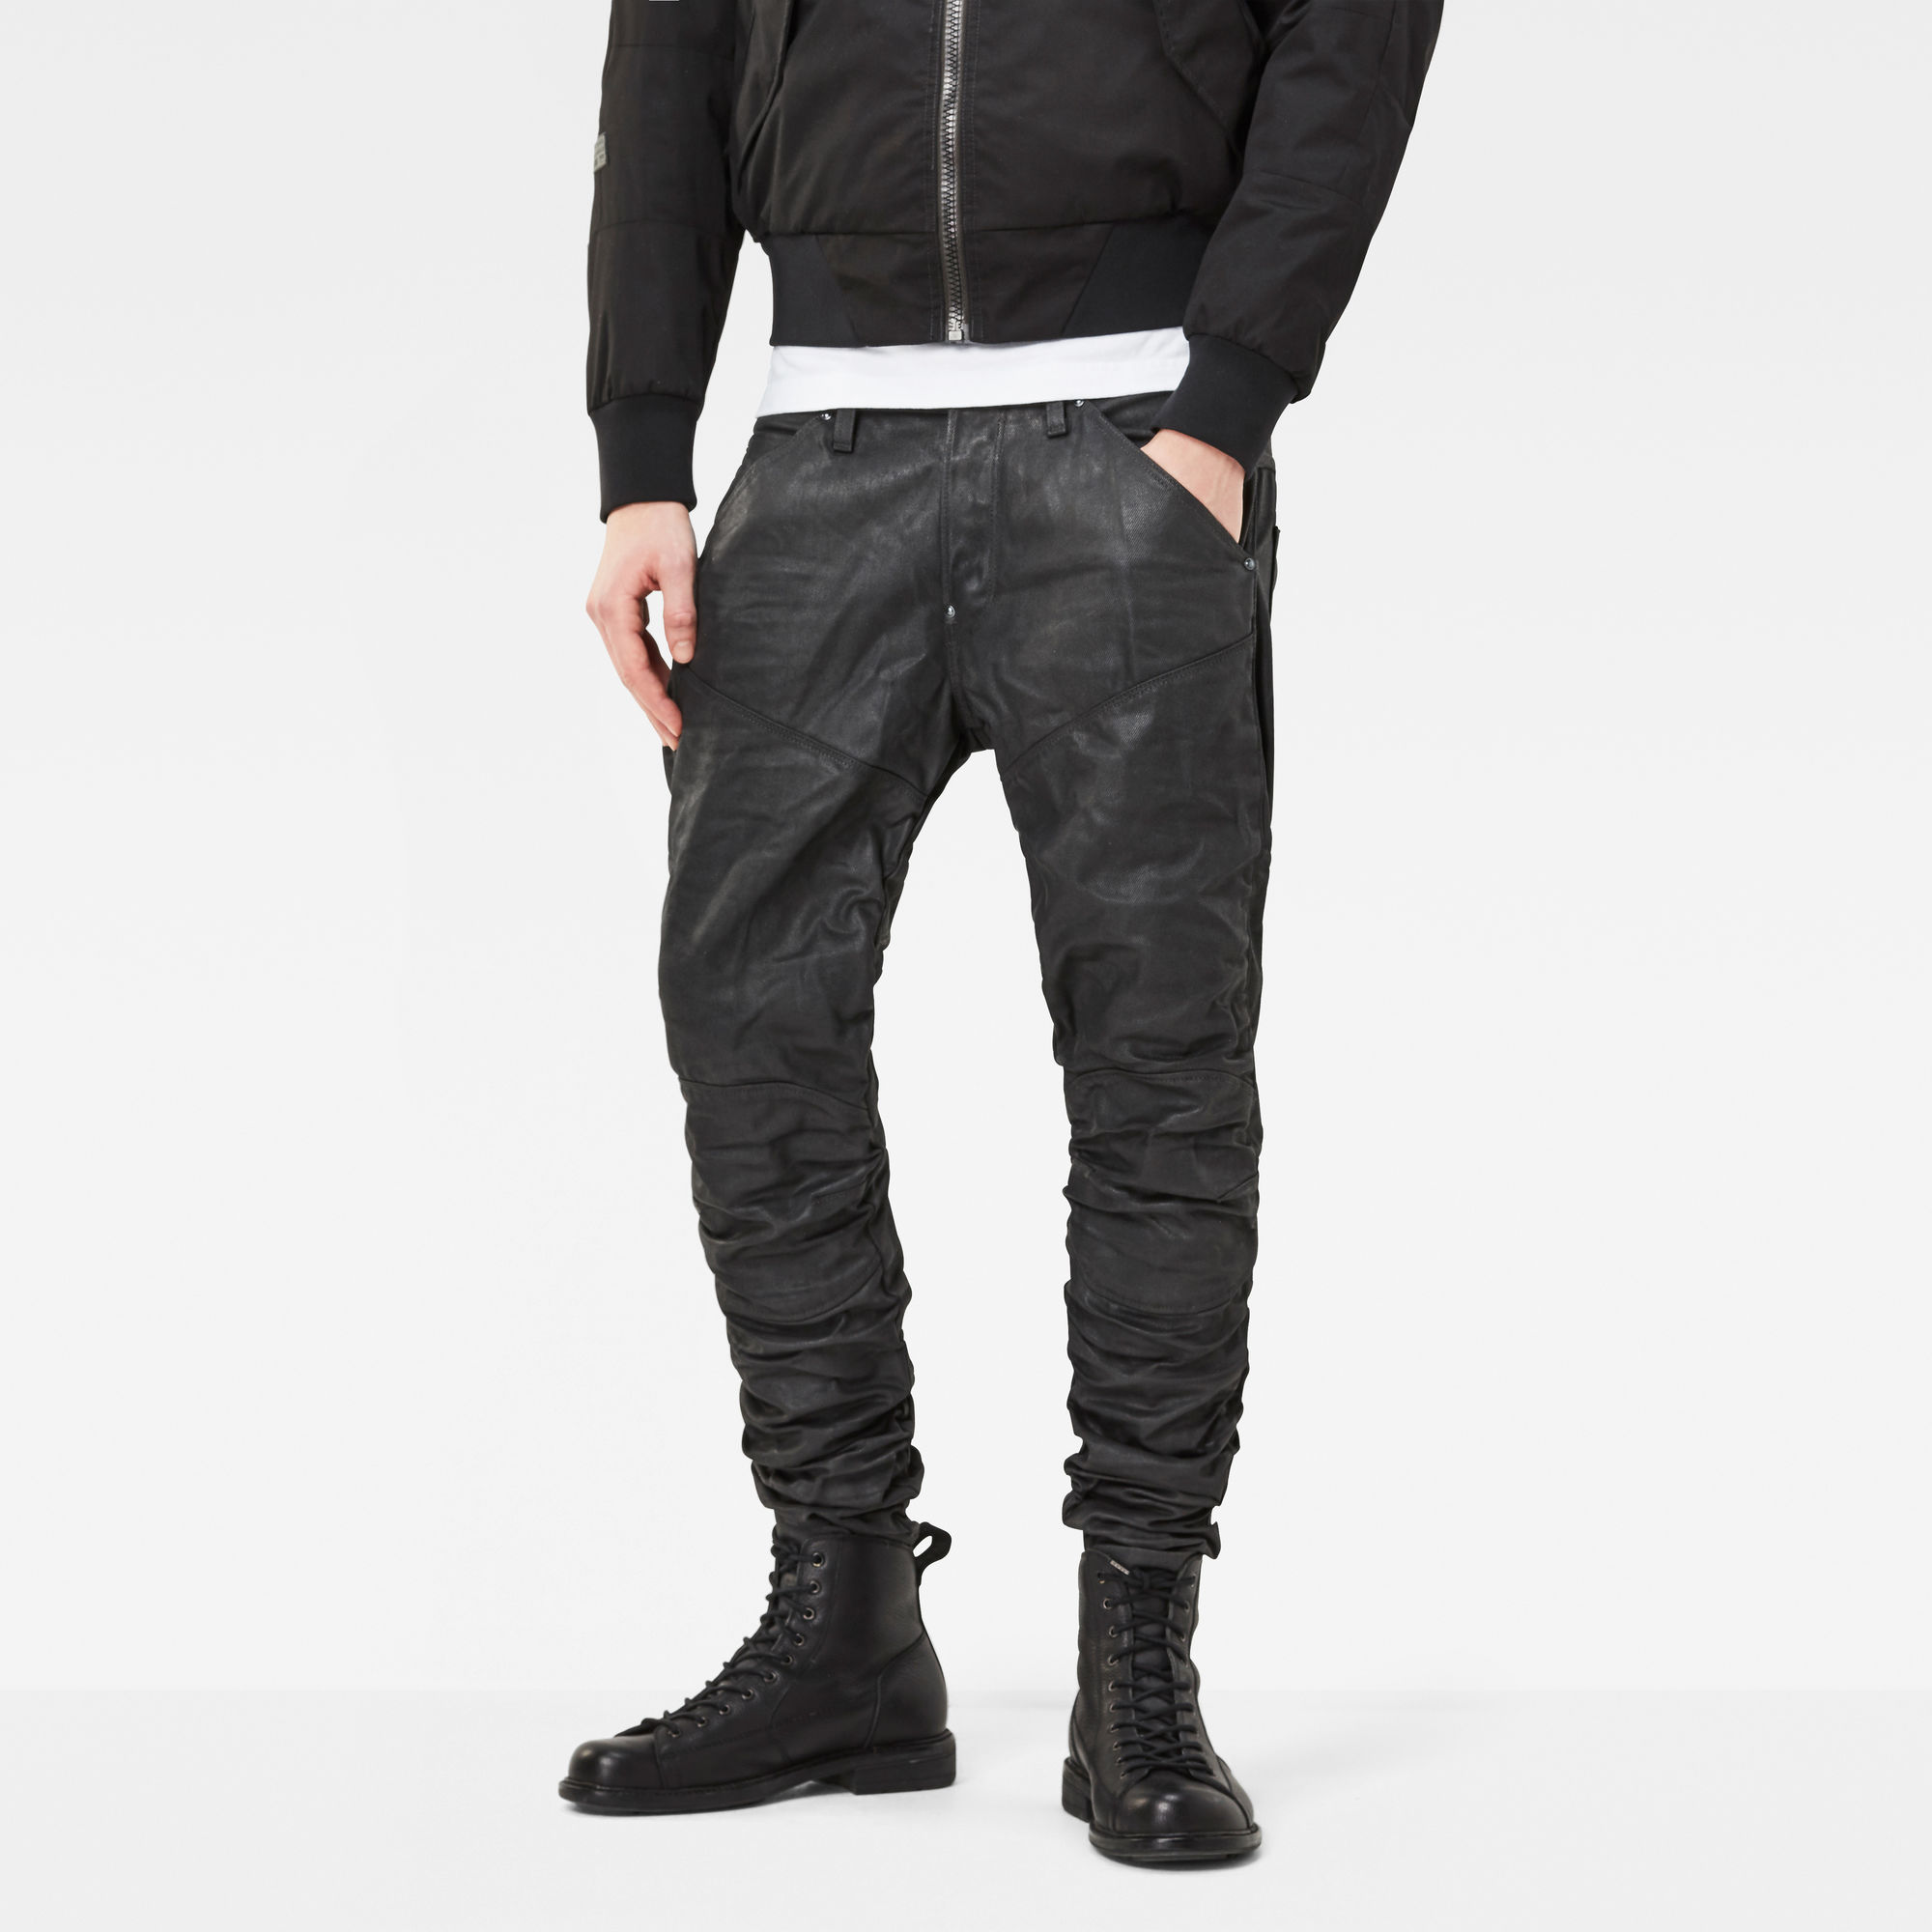 5620 G-Star Elwood Staq 3D Tapered Jeans